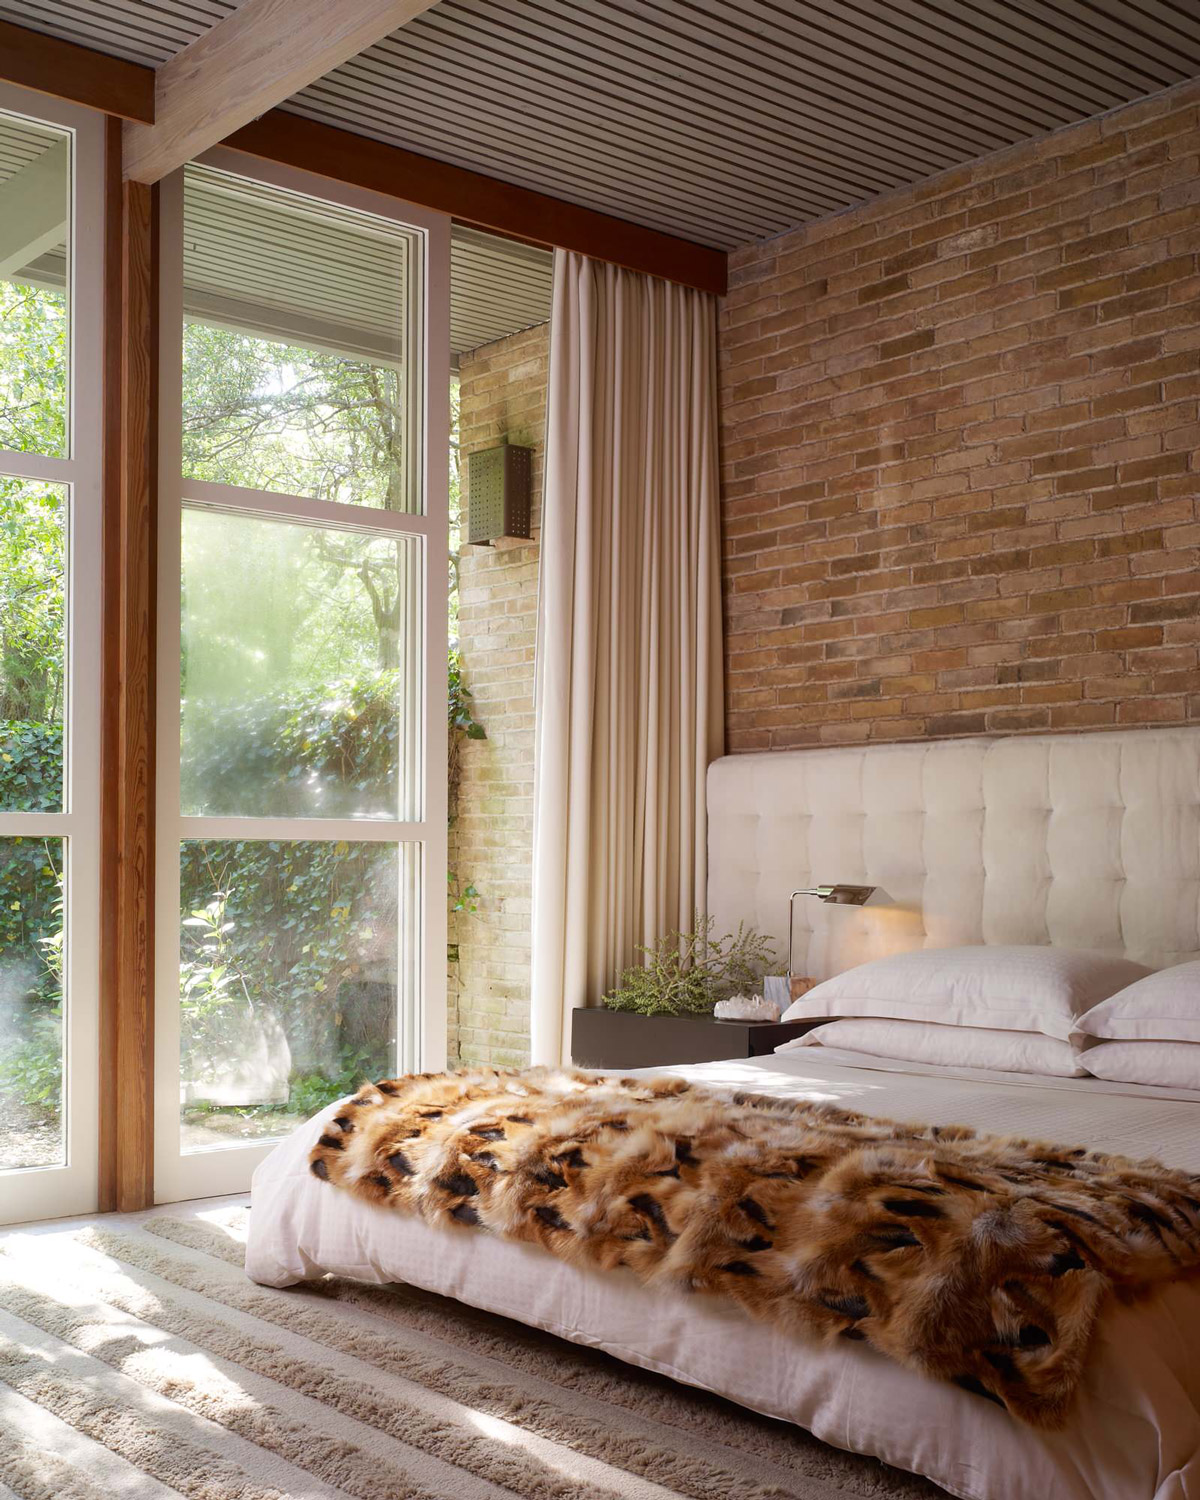 Mid Century Exposed Brick Bedroom - Bedrooms with exposed brick walls